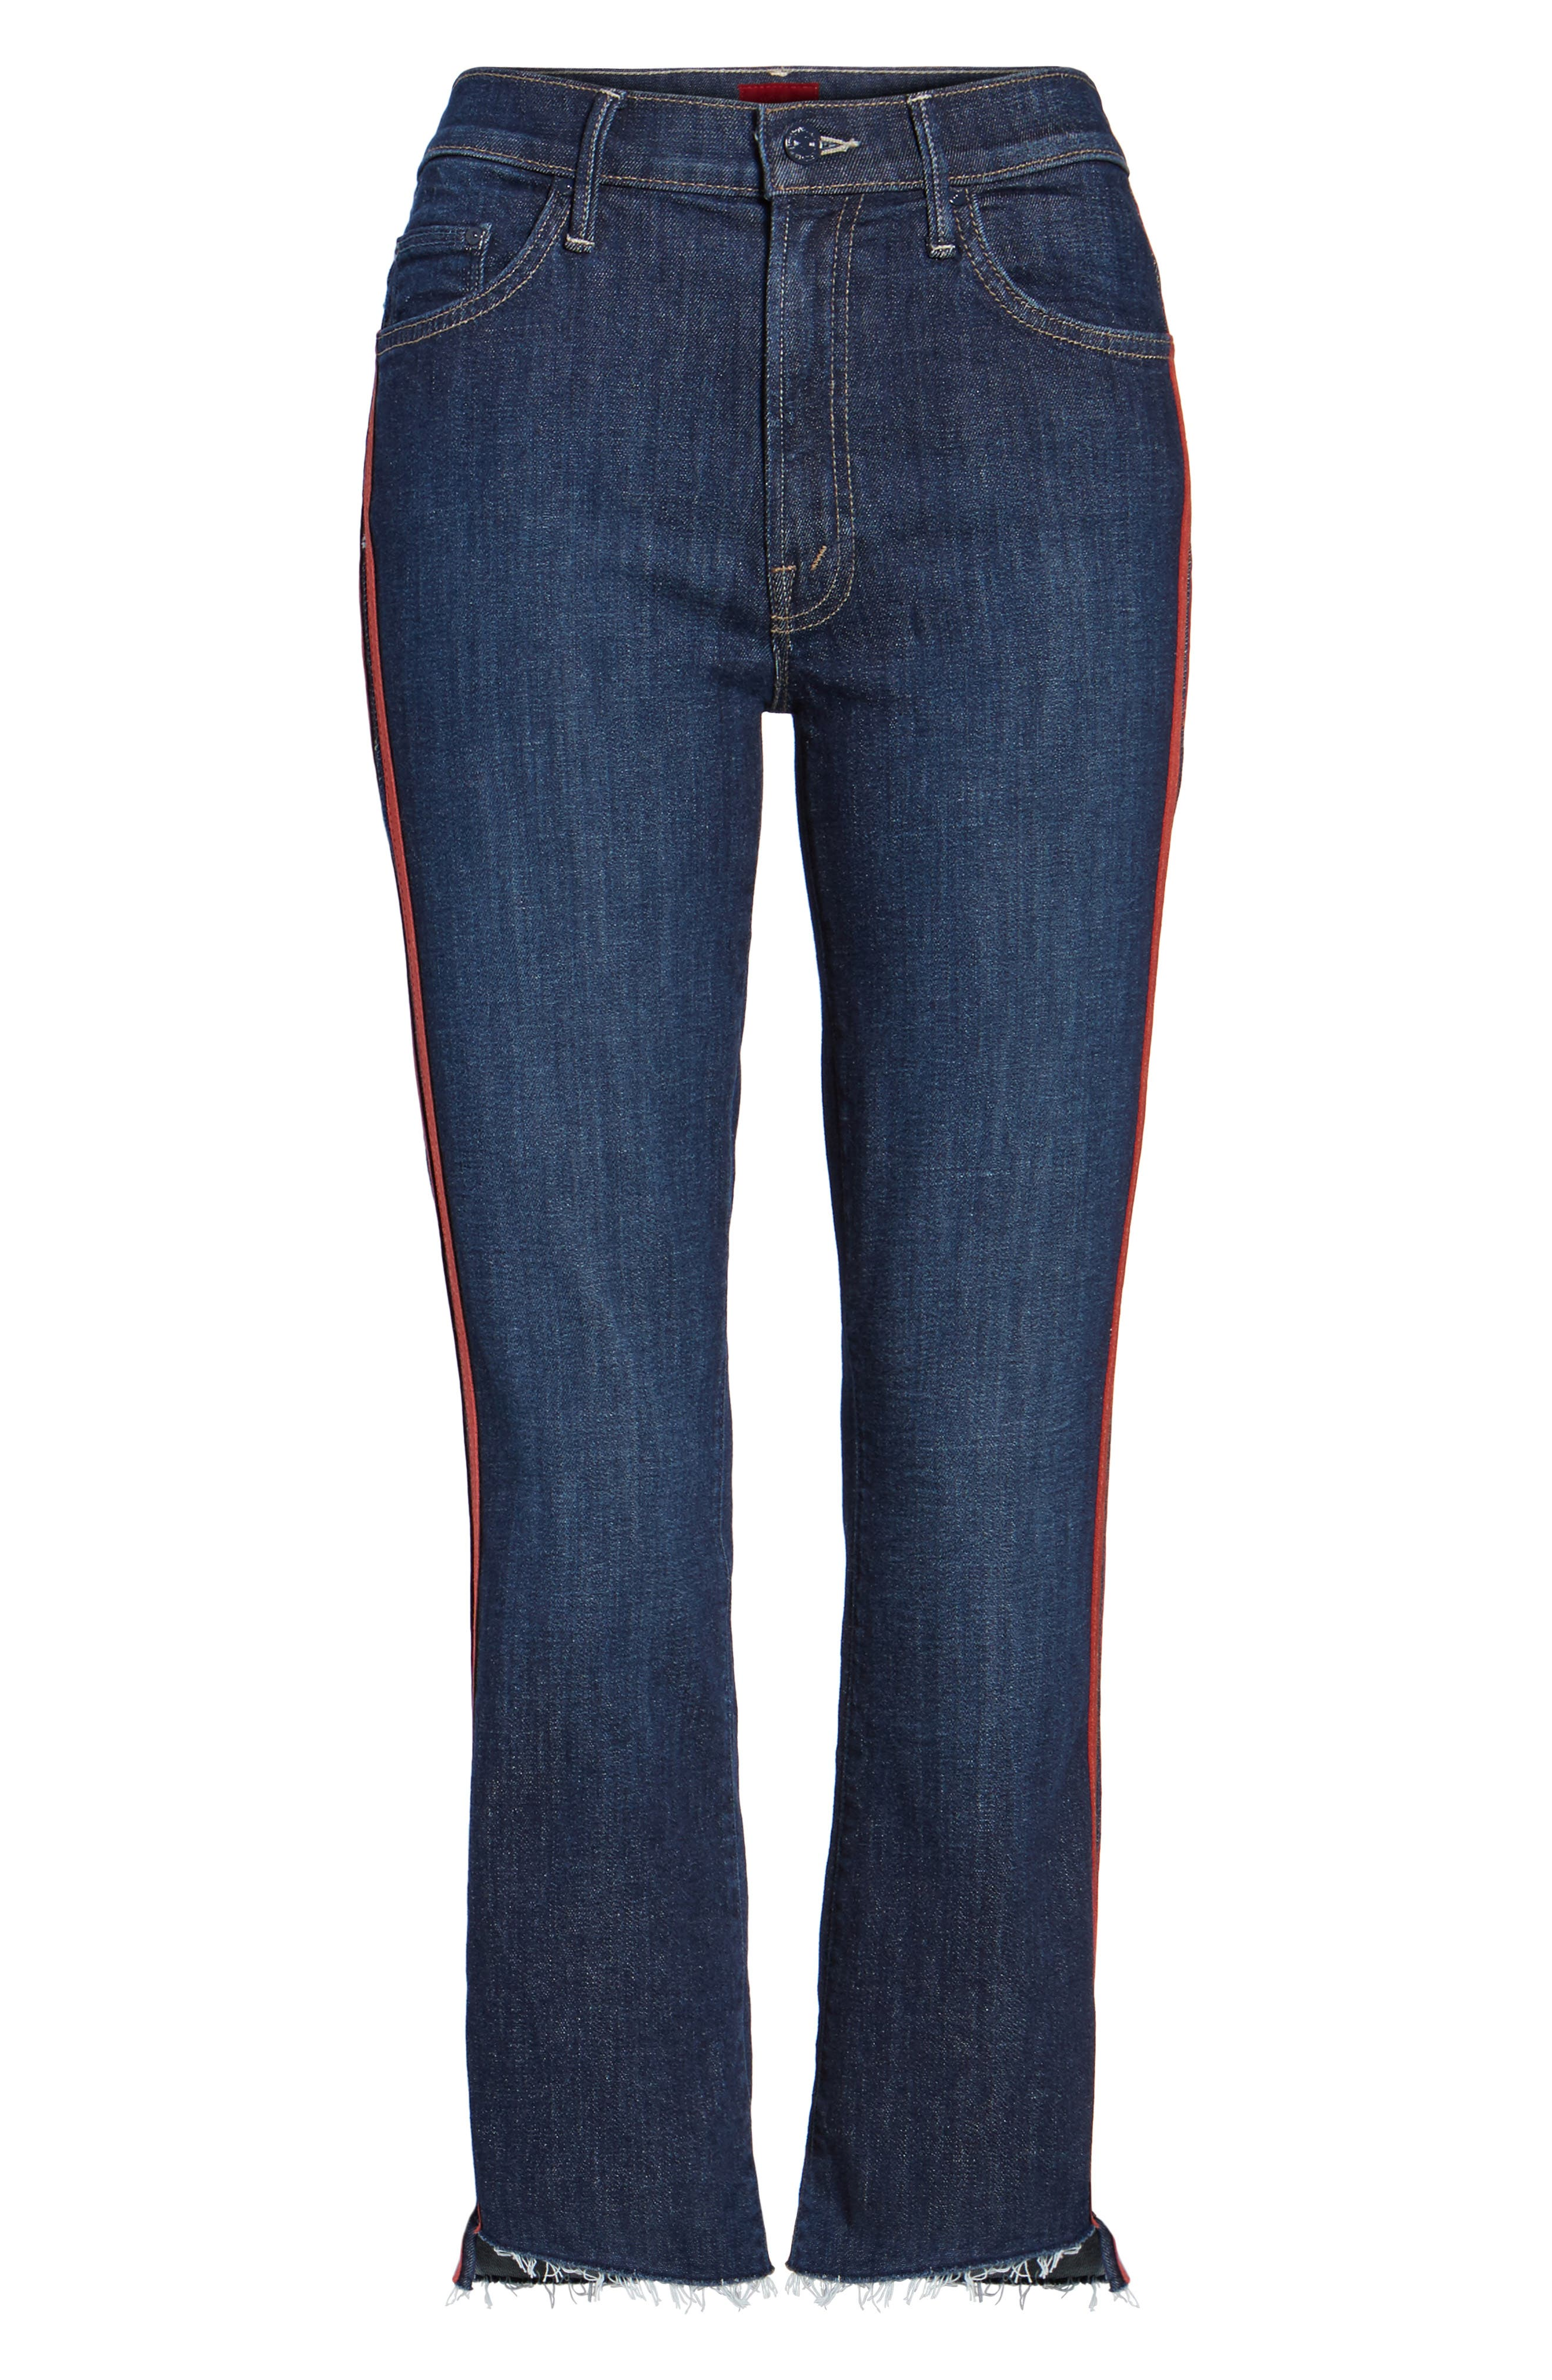 Crop Step Fray Jeans,                             Alternate thumbnail 7, color,                             402